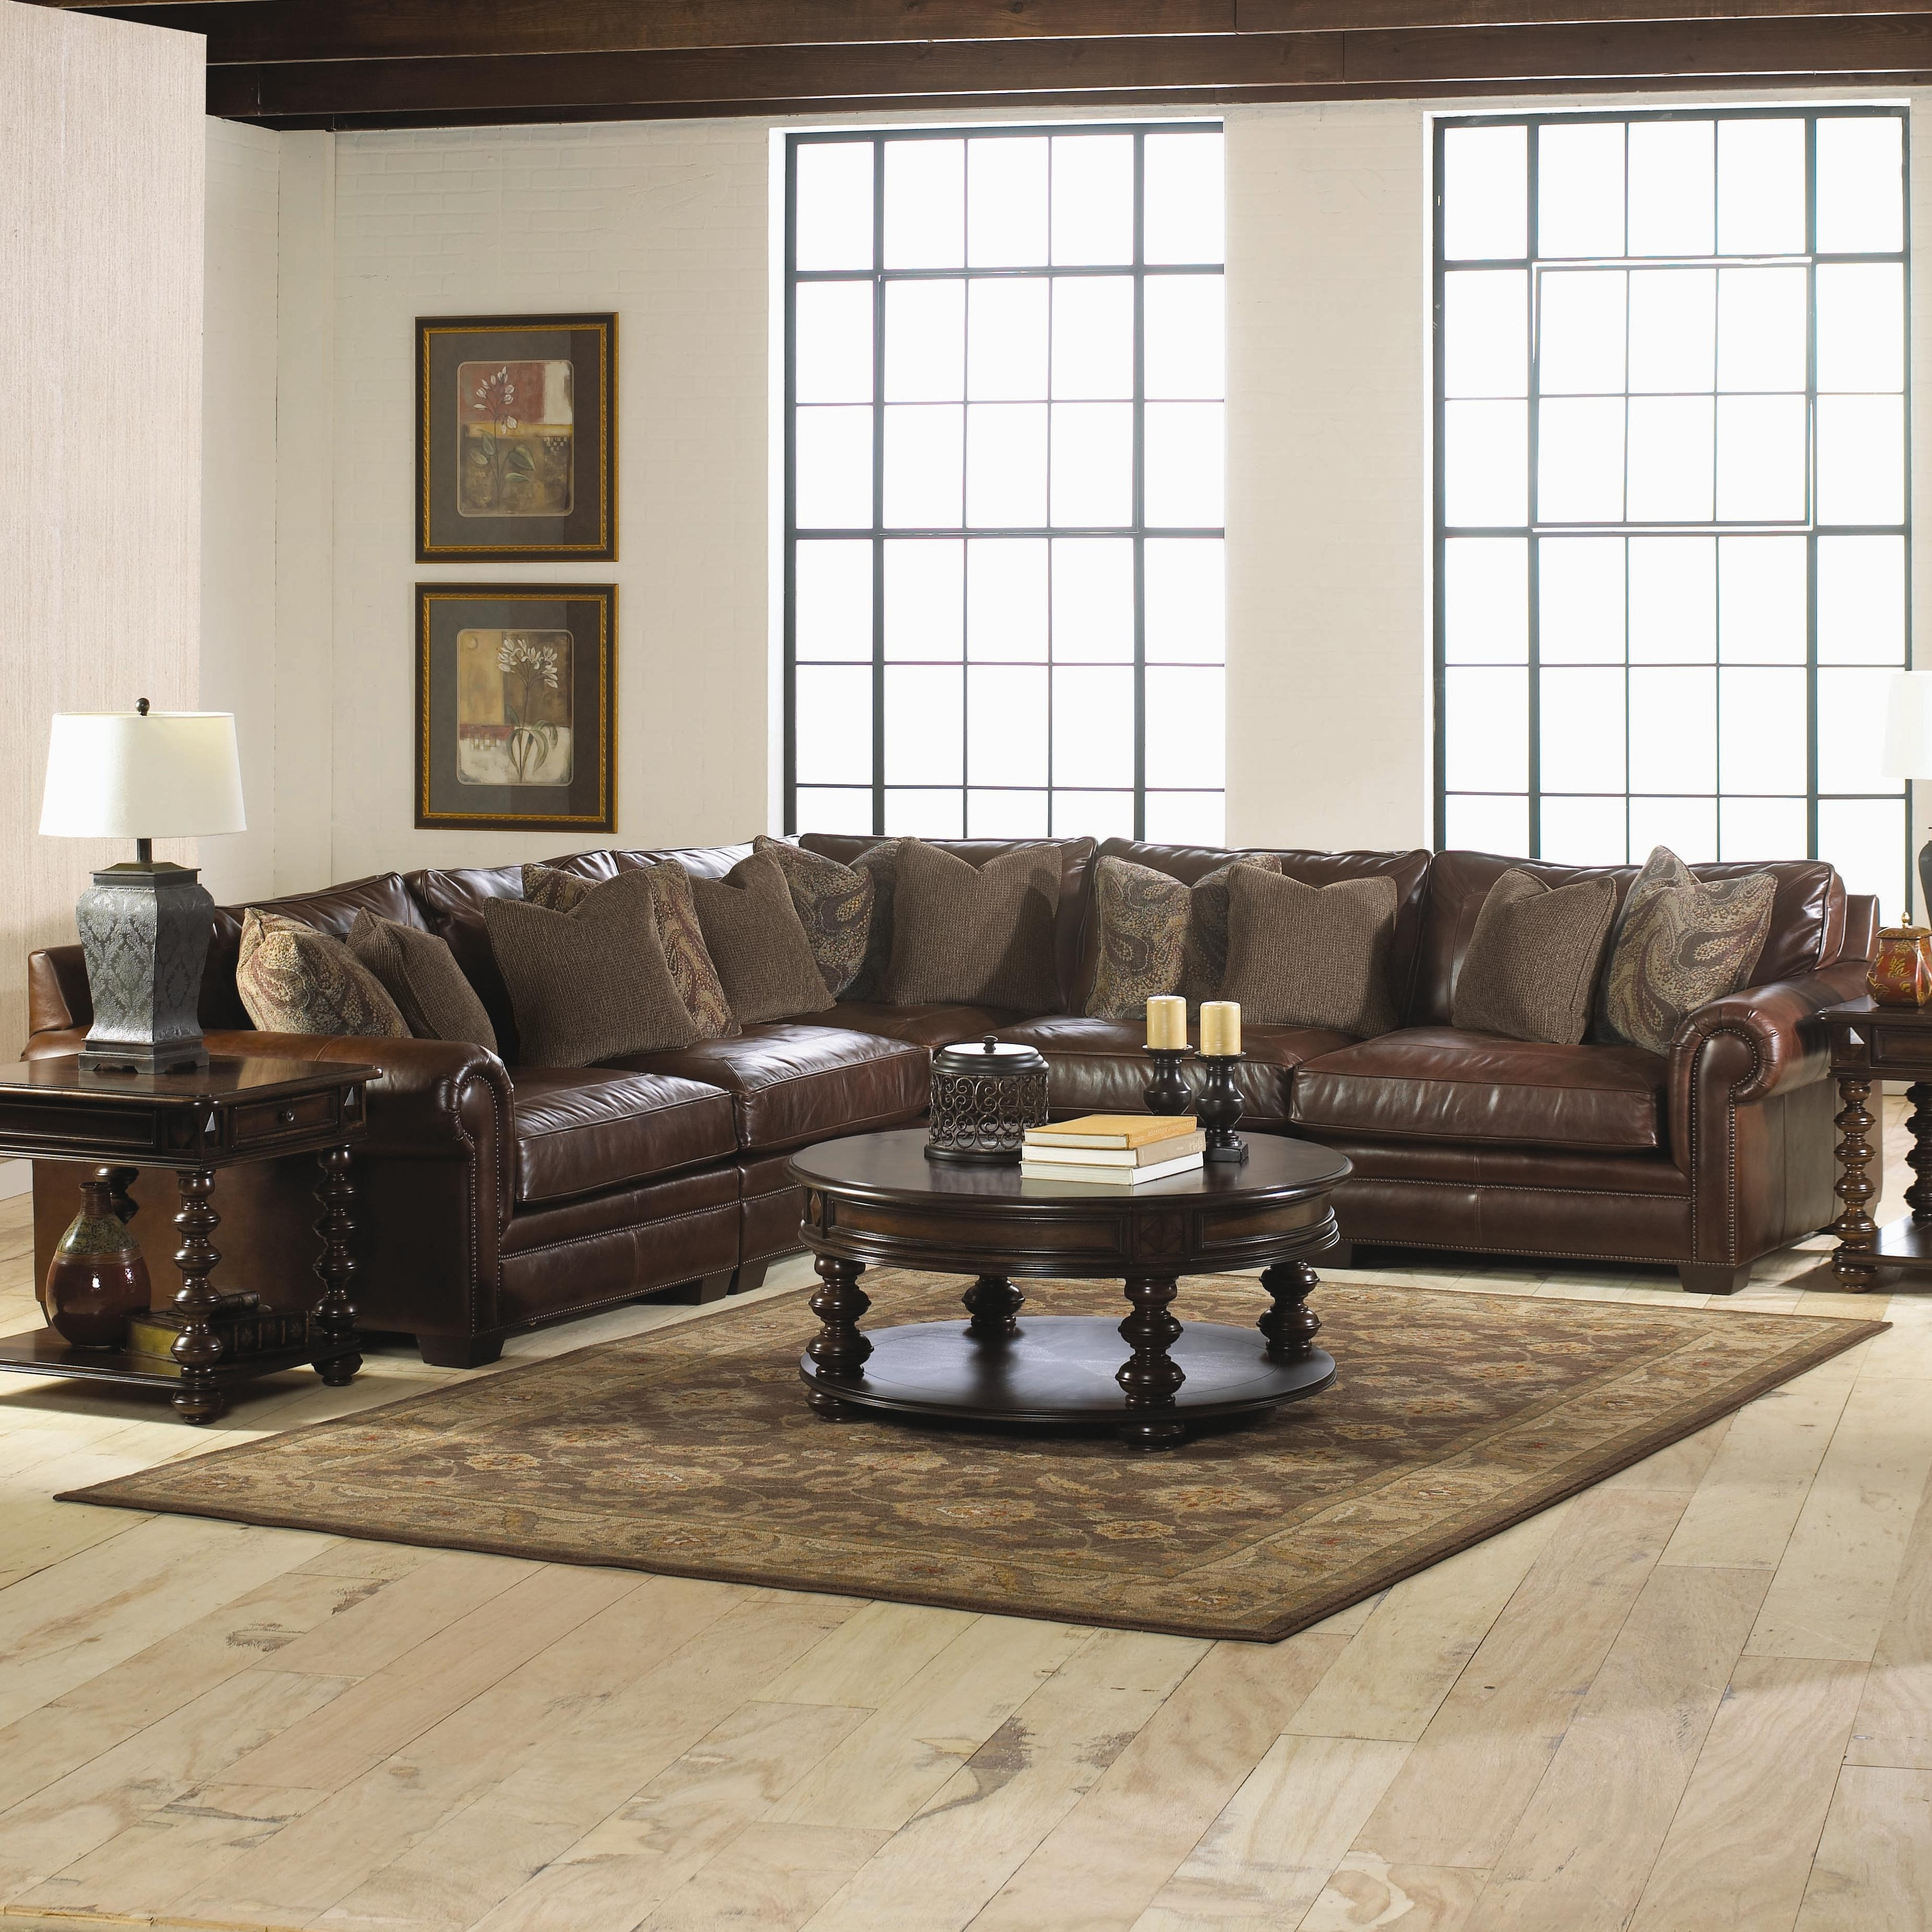 Furniture & Sofa: Glamorous Interior Furniture Designhavertys With Regard To Fashionable Jacksonville Nc Sectional Sofas (View 7 of 15)